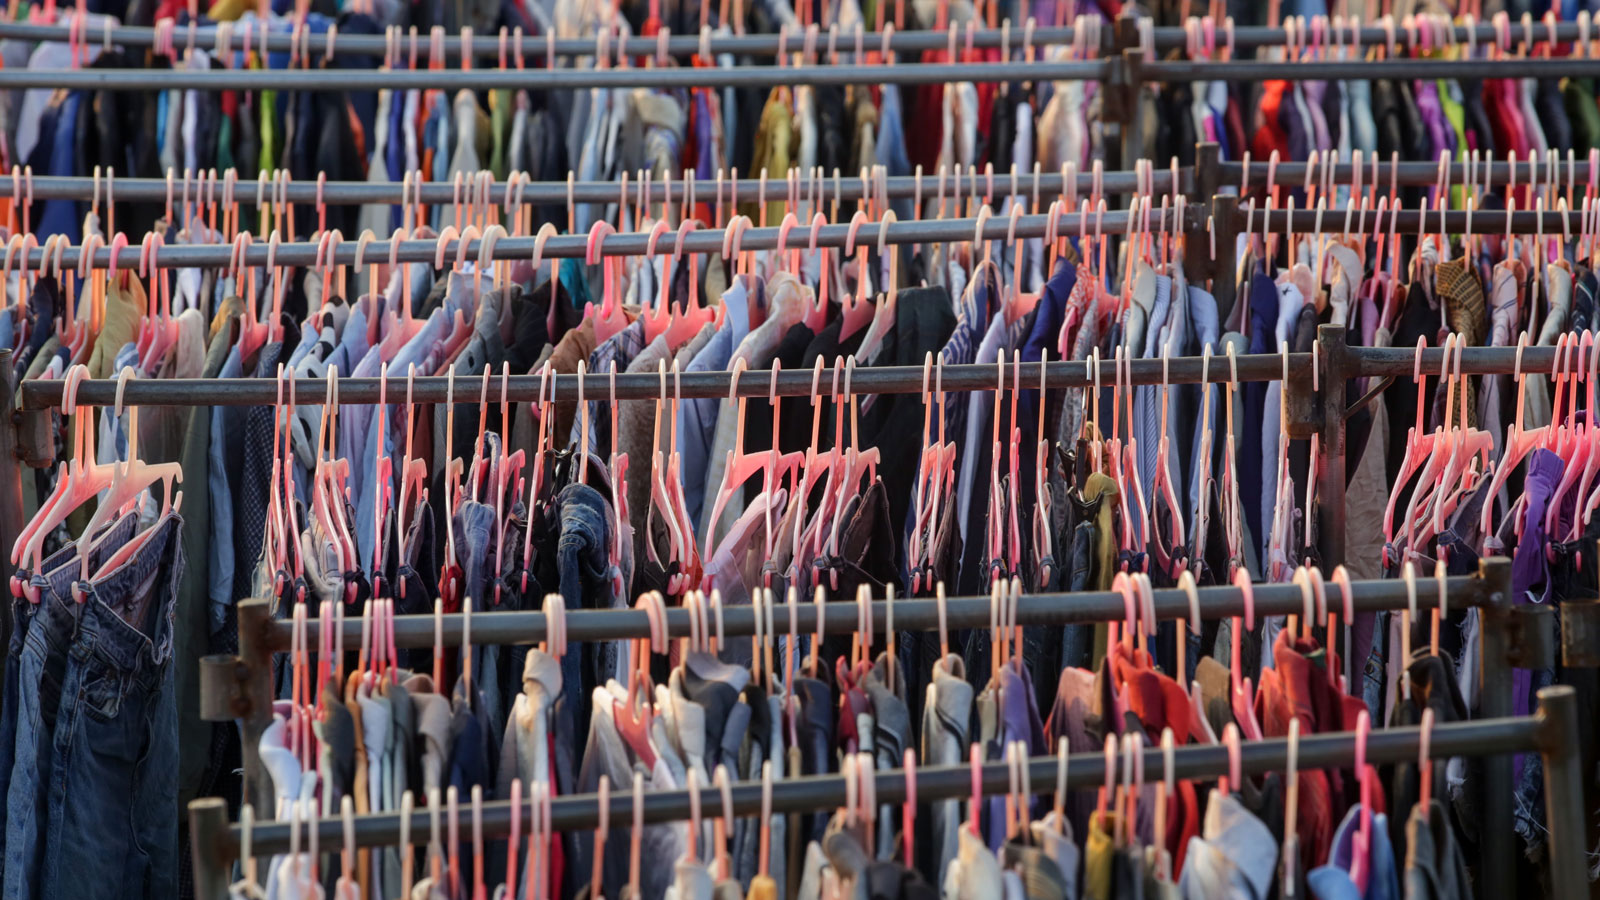 Racks of clothing.  Image by triocean via Shutterstock